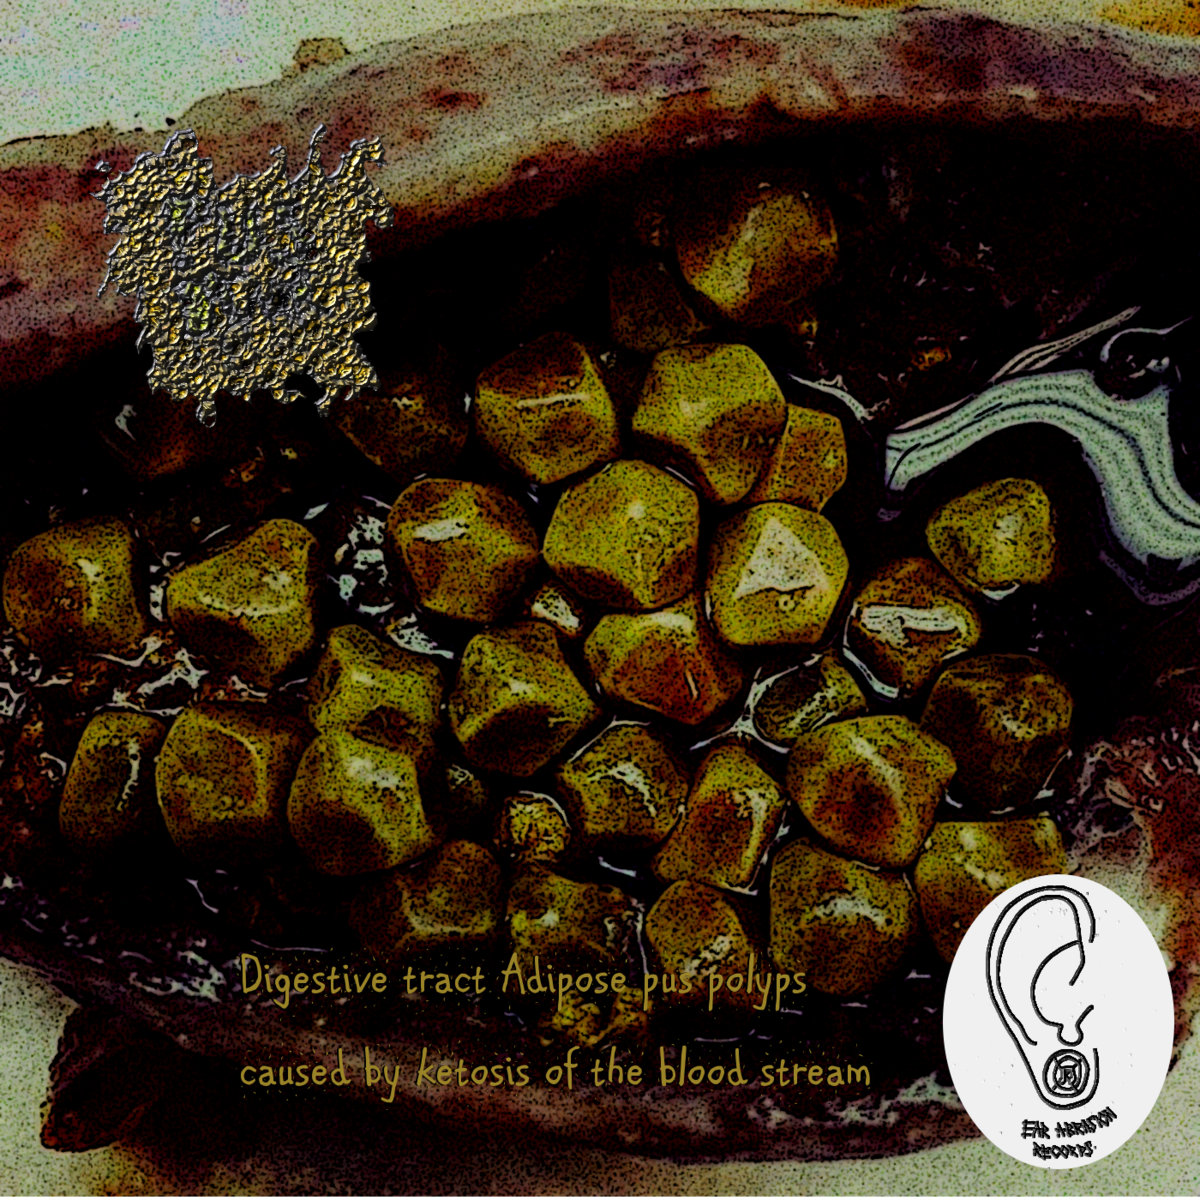 56 Untitled Pus Oozing Polyps | Ear Abrasion Records